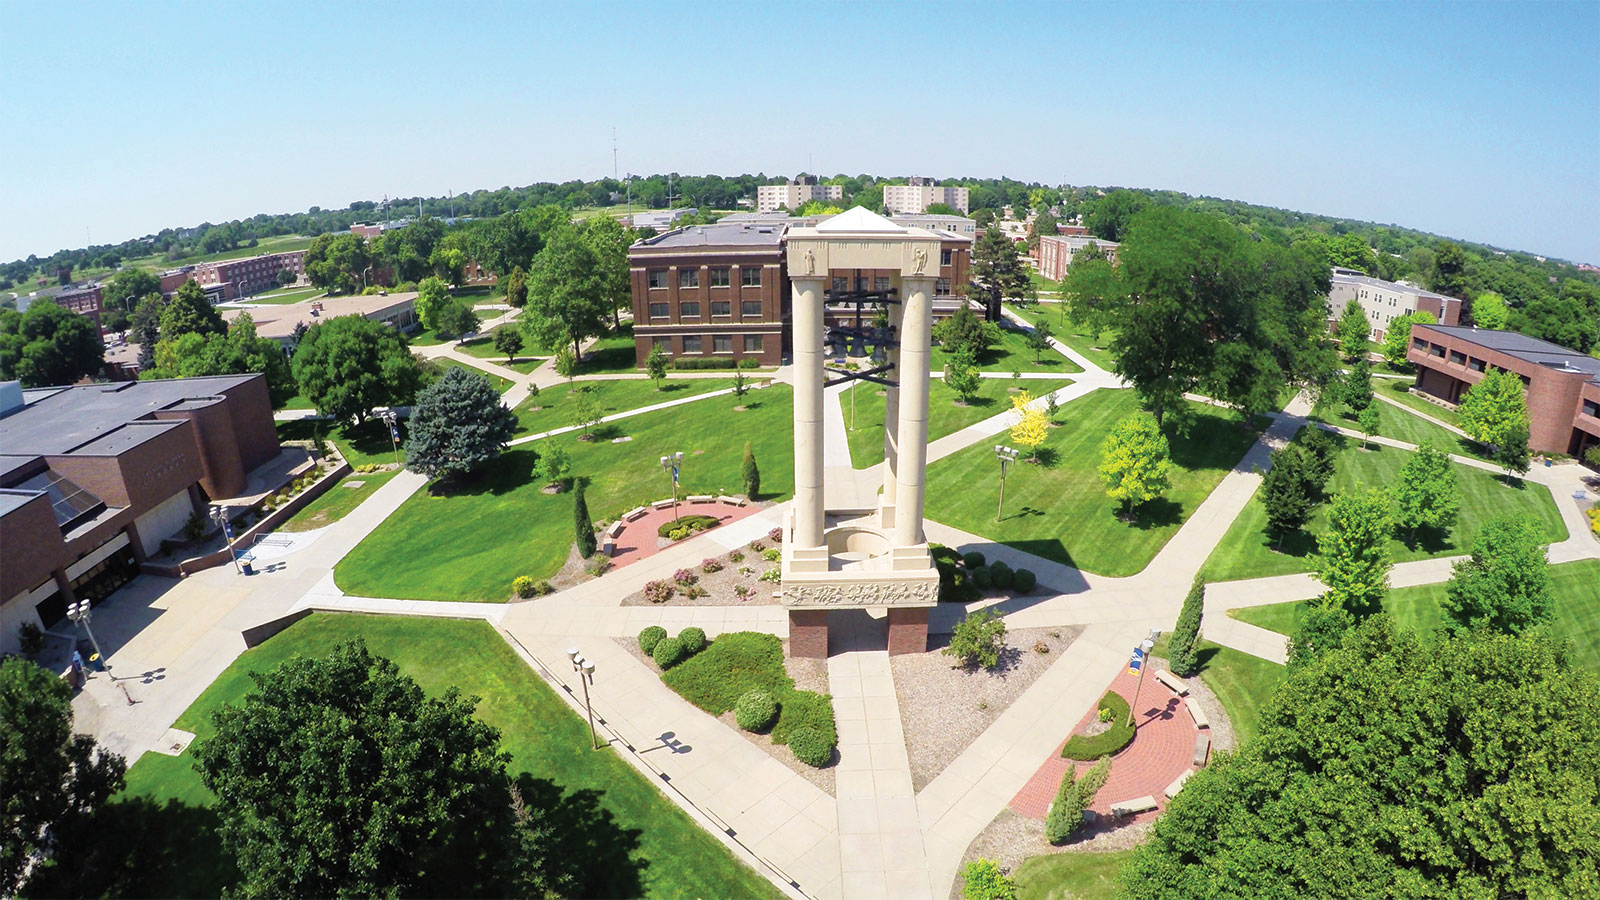 Bell tower drone shot